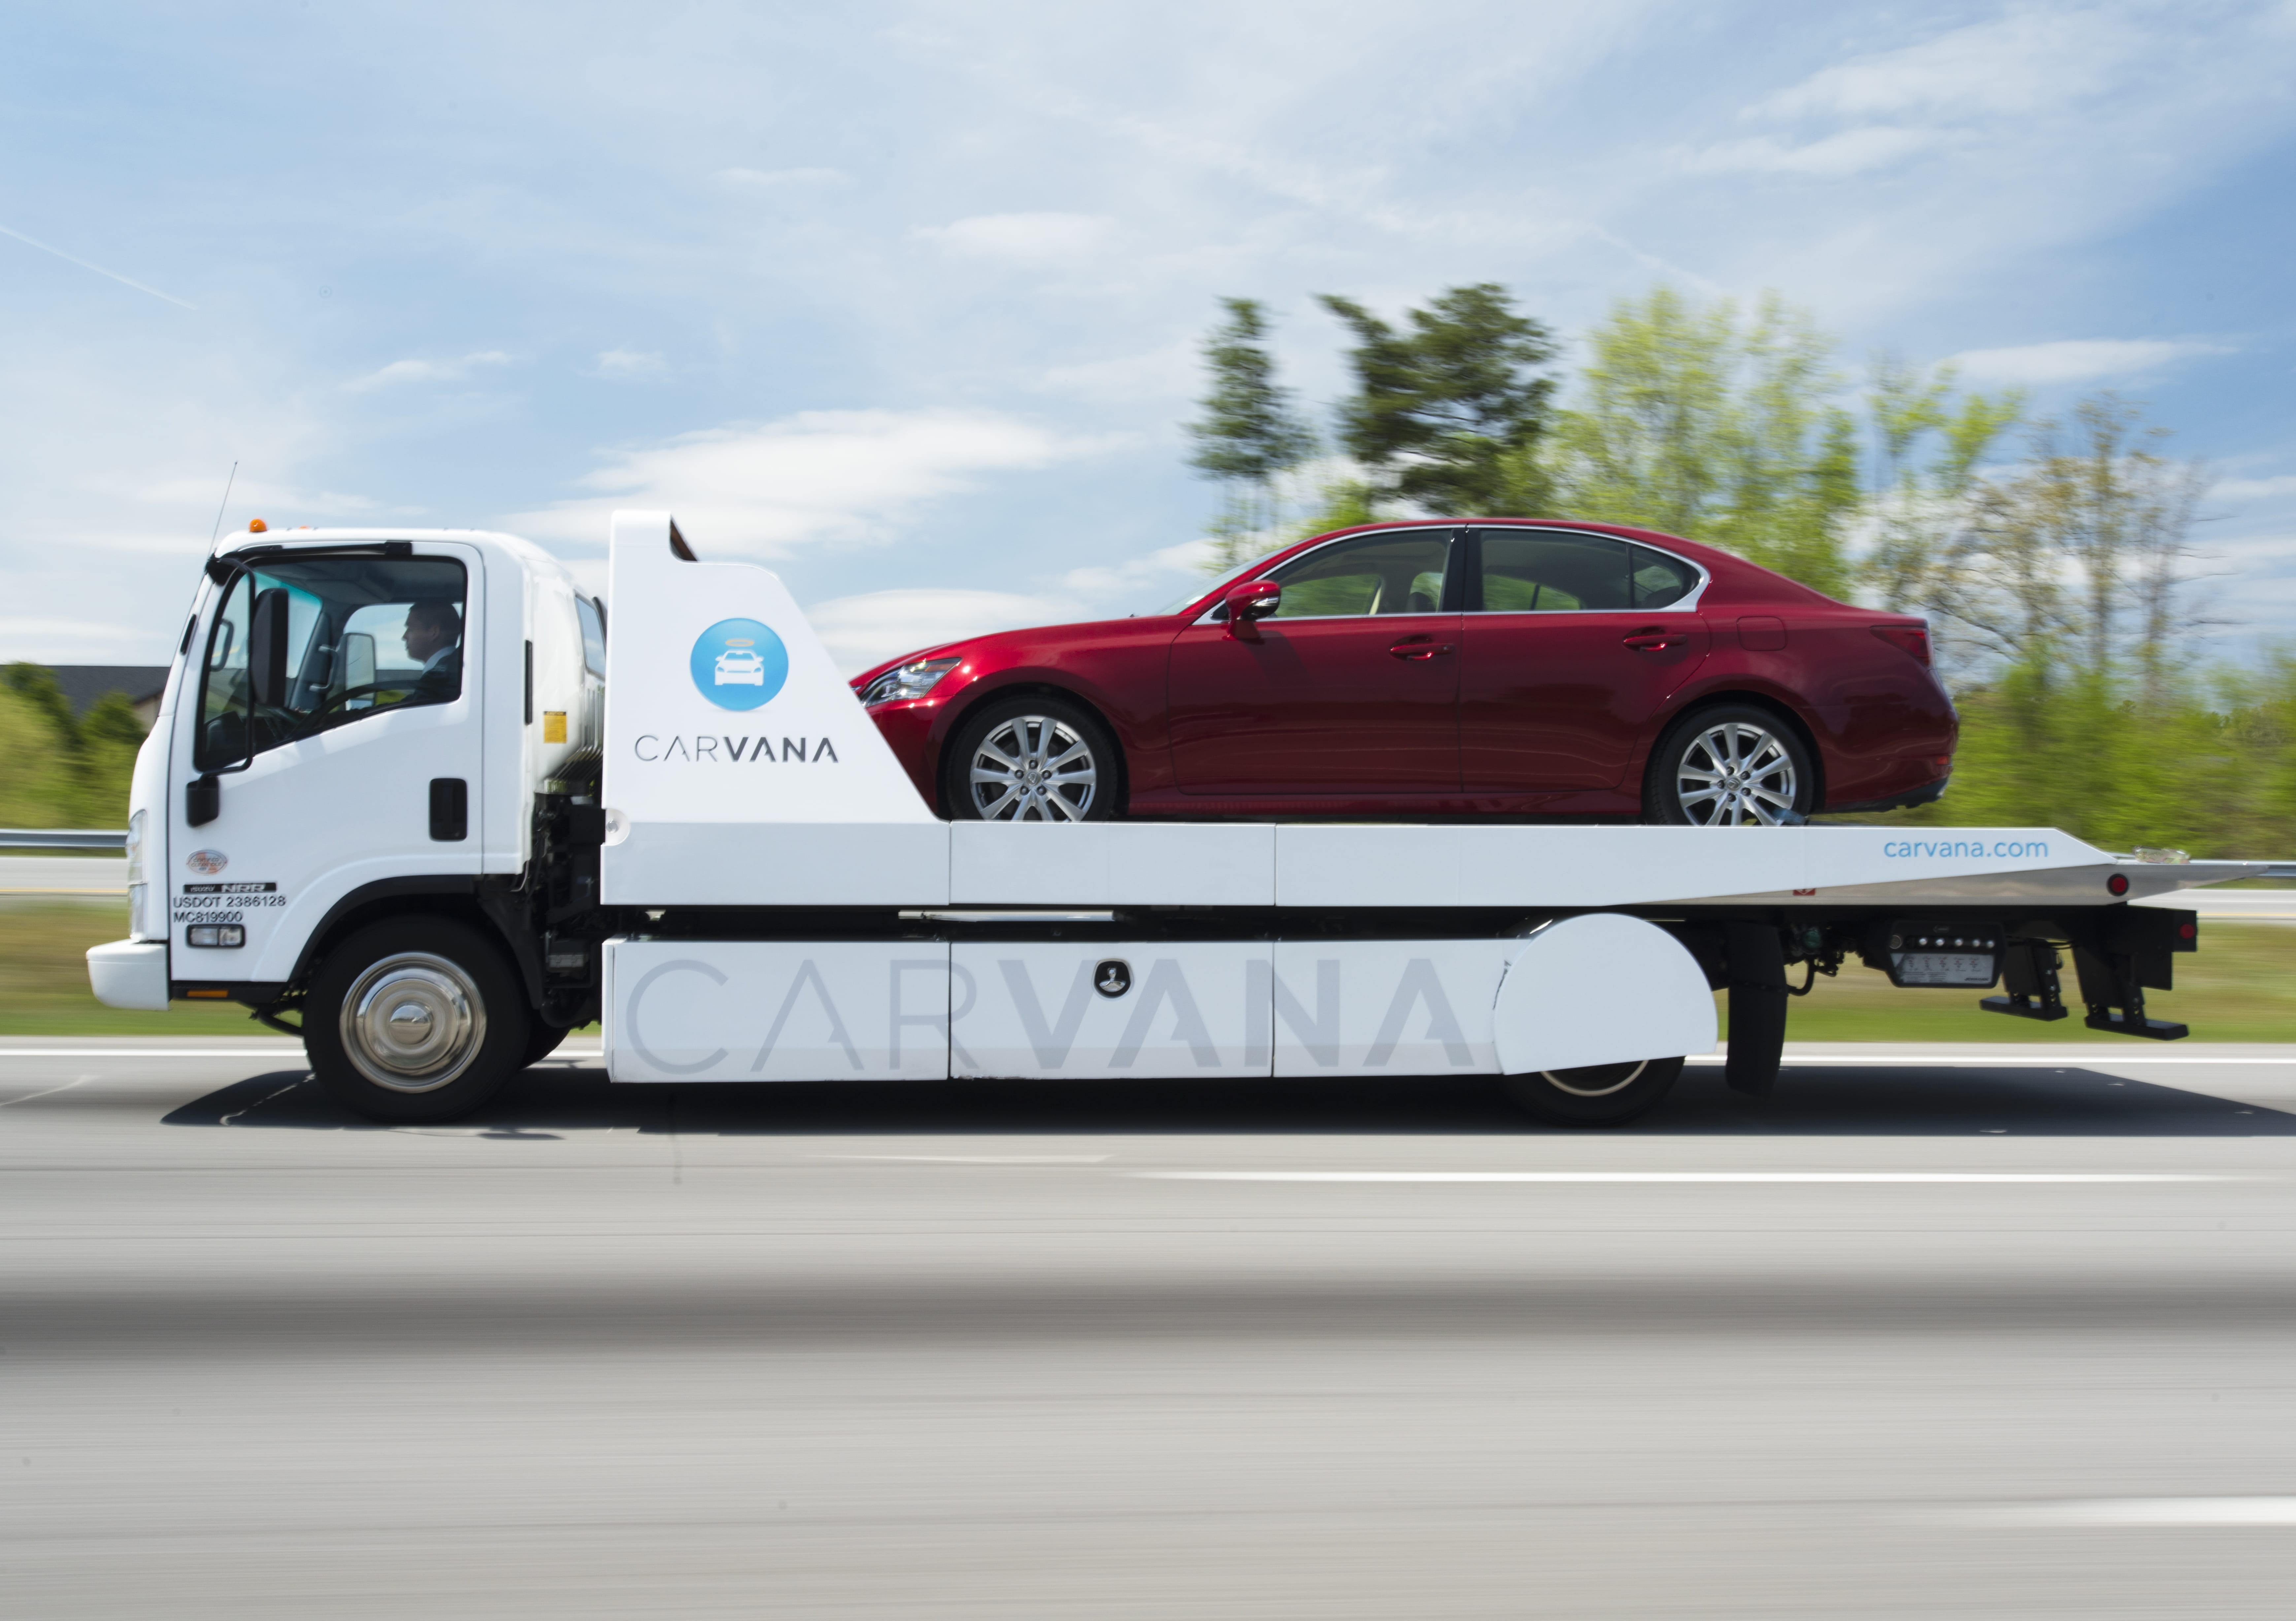 New Service, Carvana, Launches Online Used Car Sales in St. Louis ...